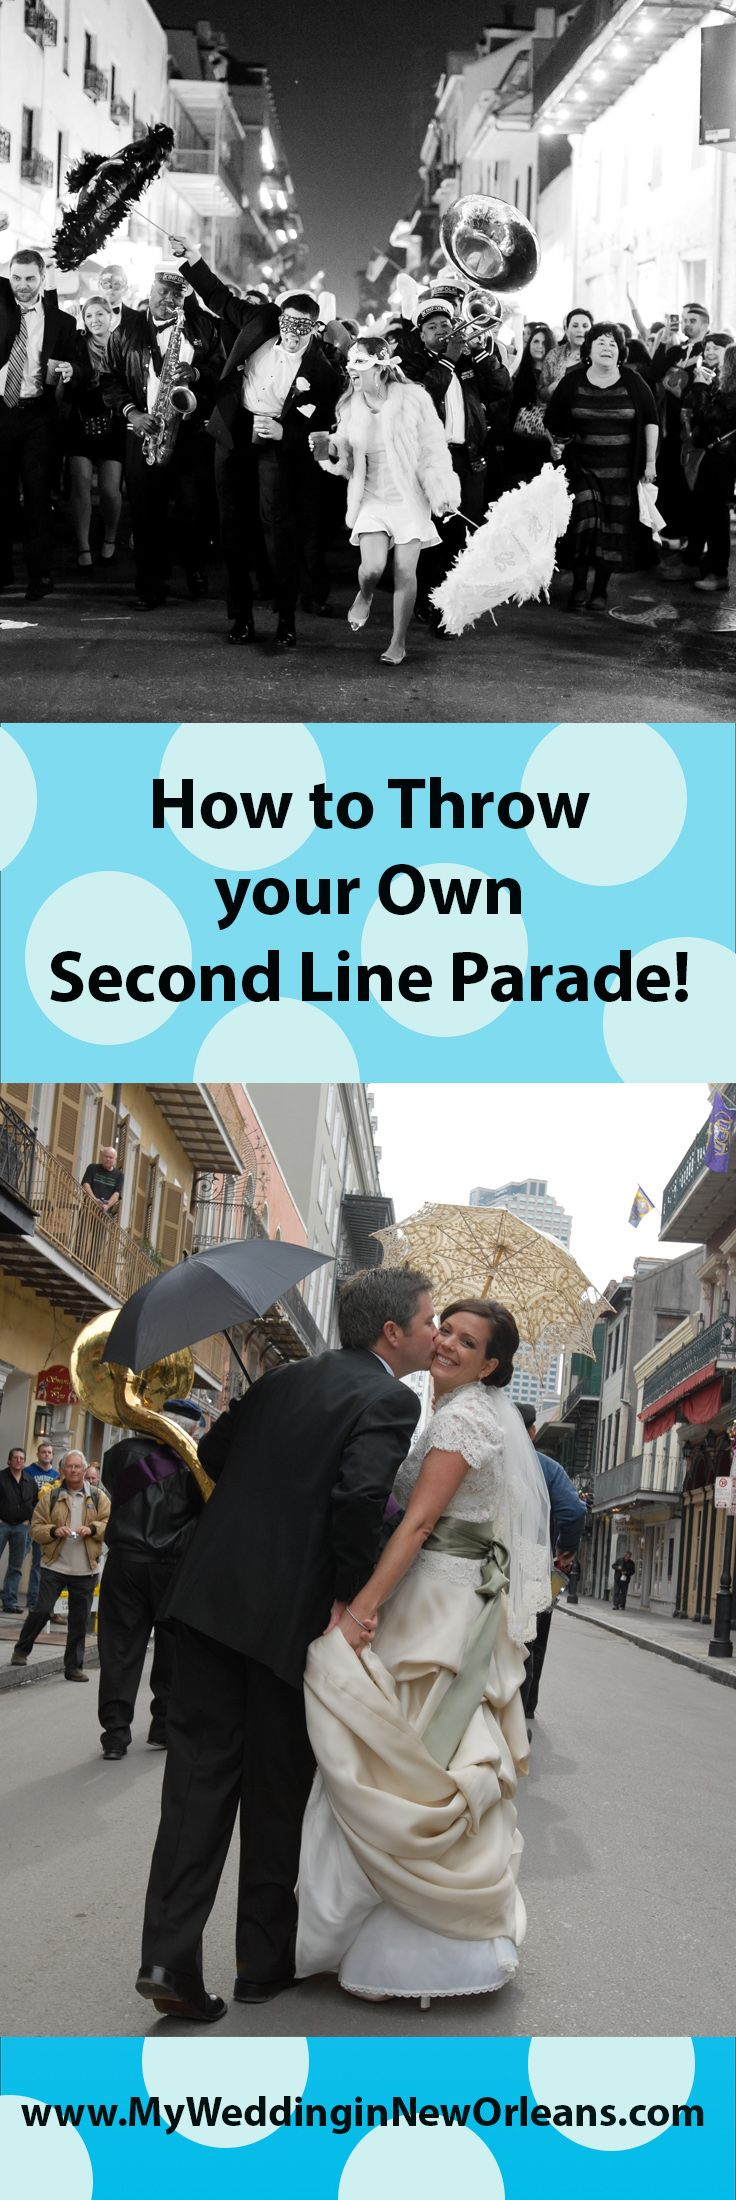 One of the most popular traditions during New Orleans weddings is the famous Second Line parade.